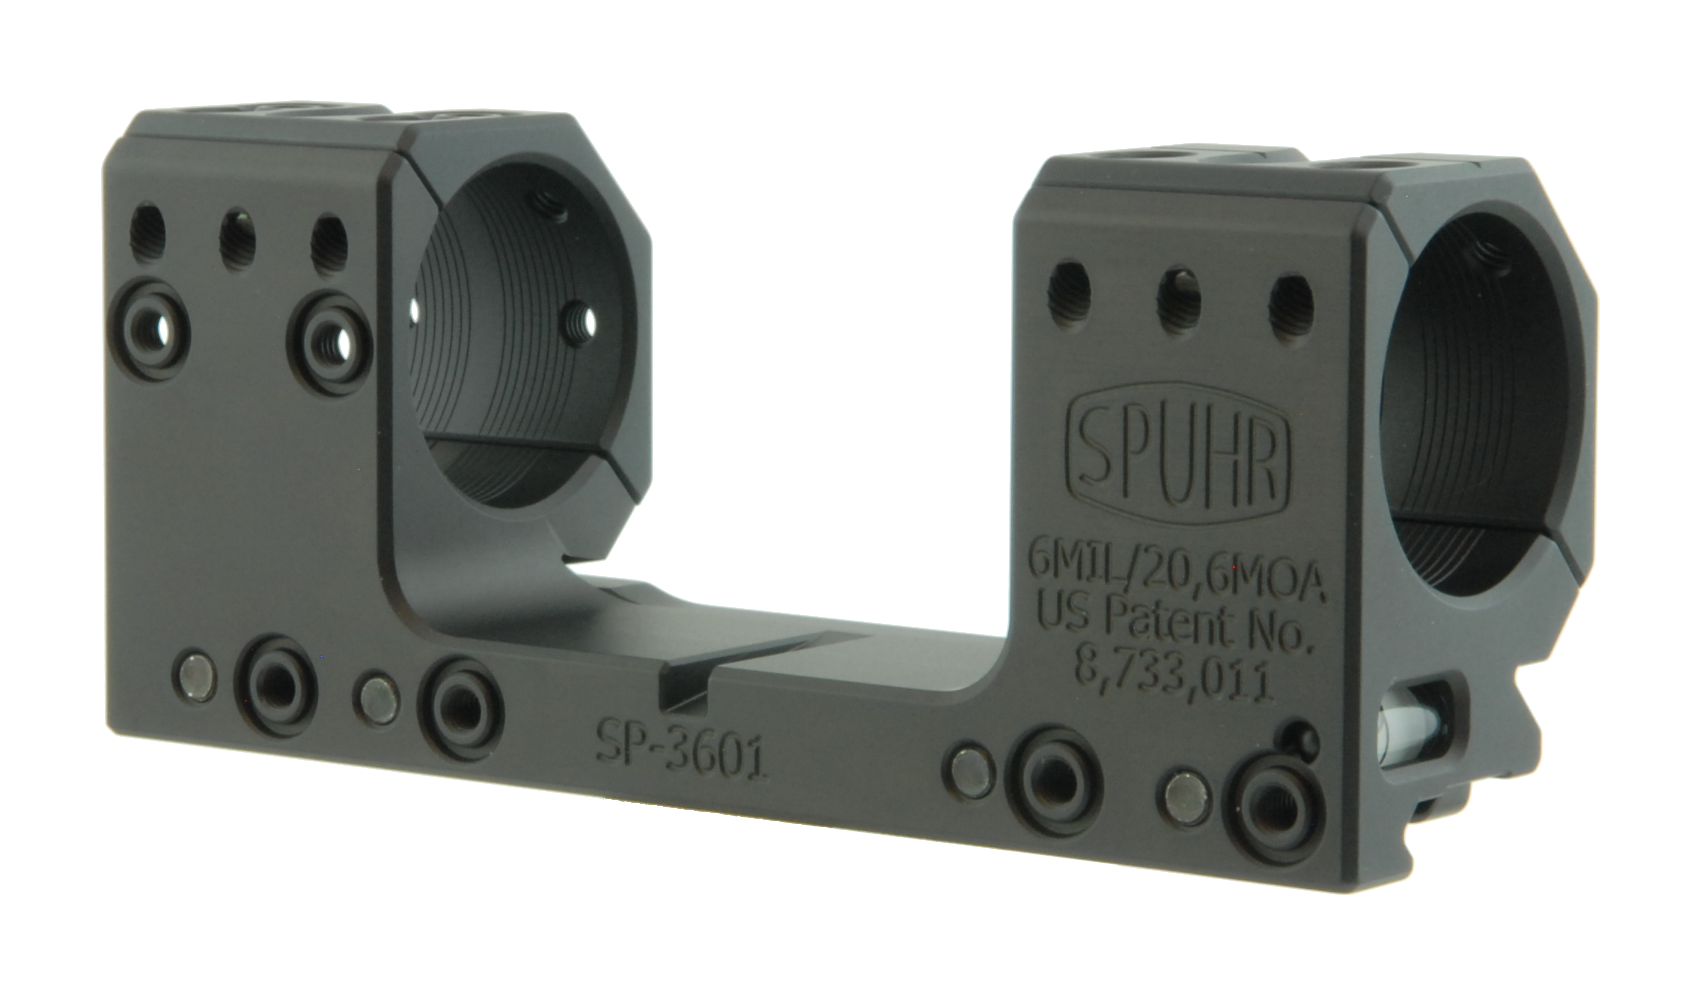 "SP-3601 Scope Mount Ø30 H30mm/1.181"" 6MIL PIC"